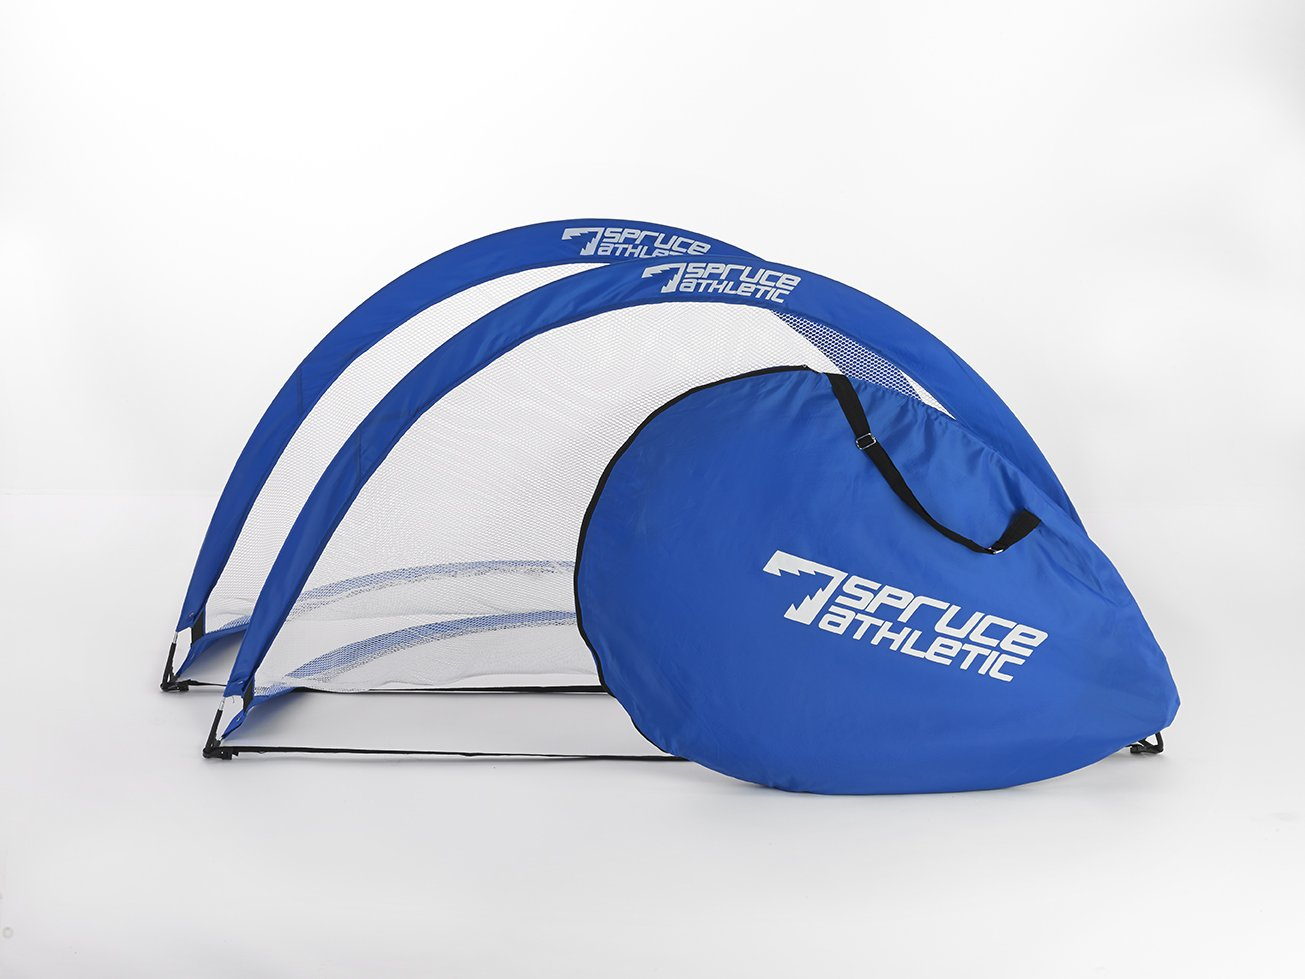 1 Pair of Competition Quality 6ft Pop-up Soccer Goals with Free Carry Bag- Durable, High Quality, Collapsible, Easy to Pack and Store (ROYAL BLUE)